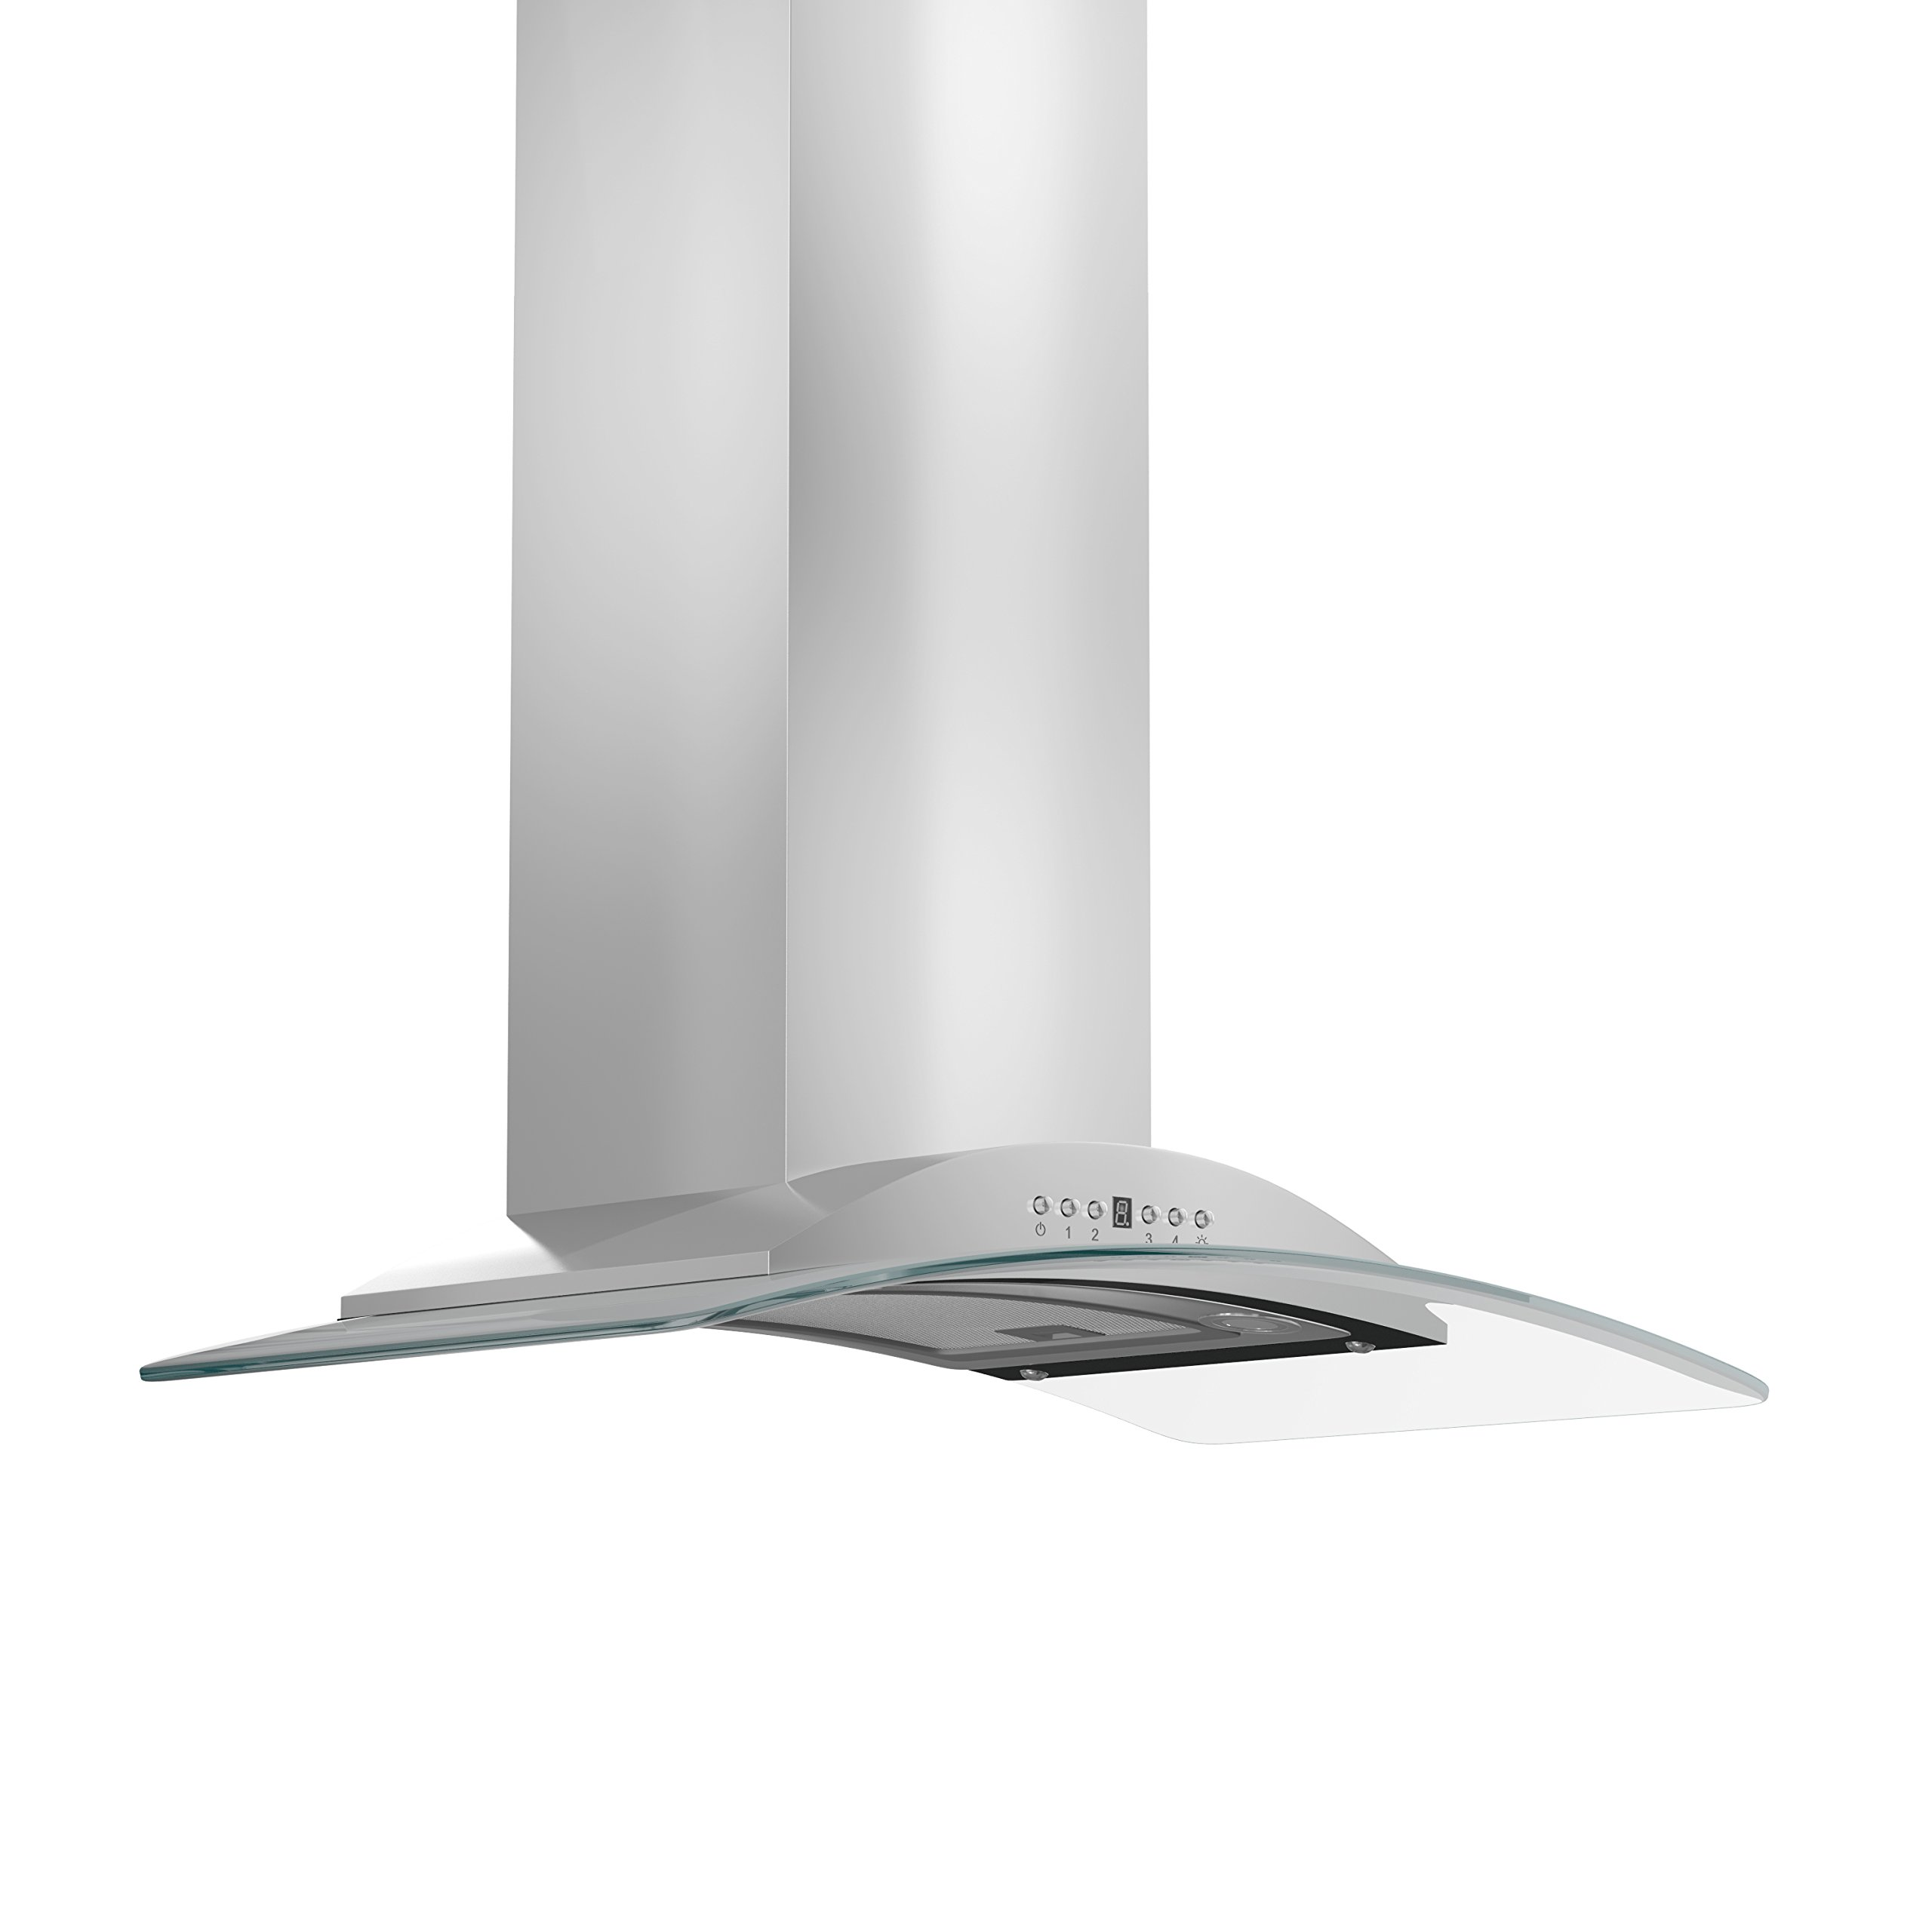 Z Line KN-36 Z Line 760 CFM Wall Mount Range Hood, 36'', /Glass, Stainless Steel